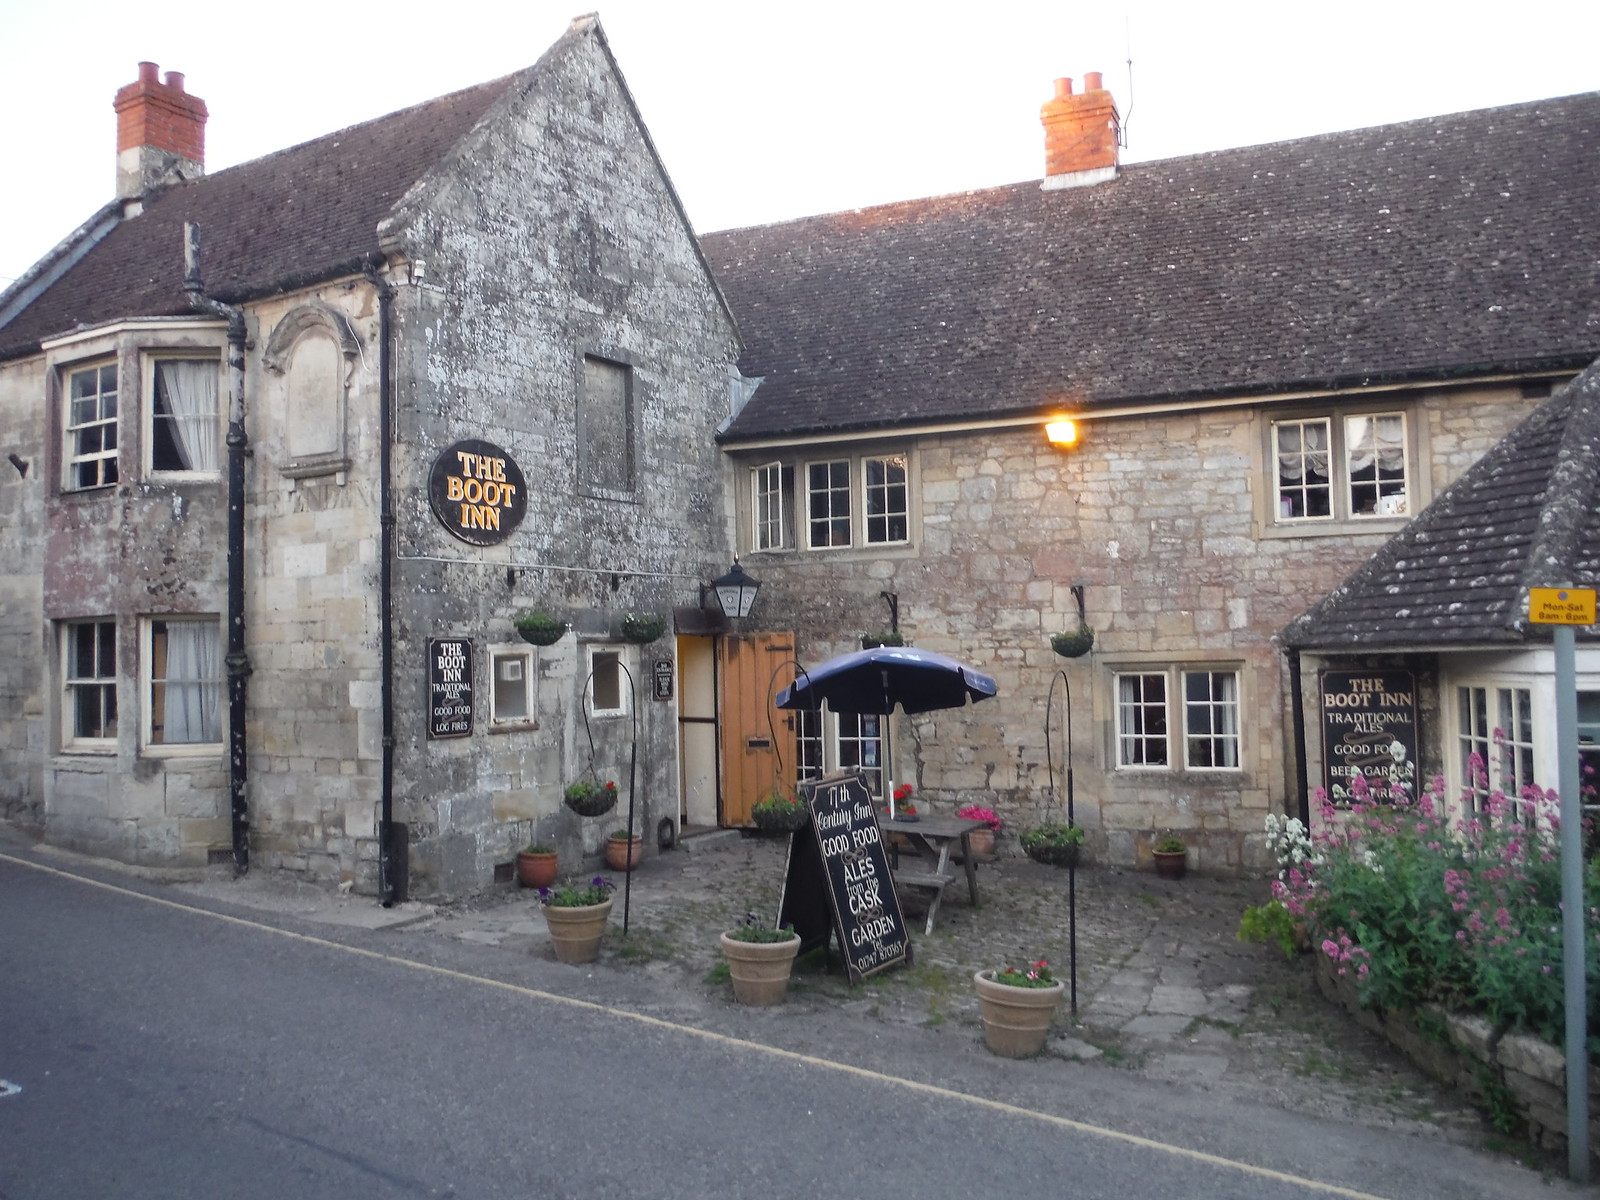 The Boot Inn SWC Walk 249 Tisbury Circular via Dinton and Fovant